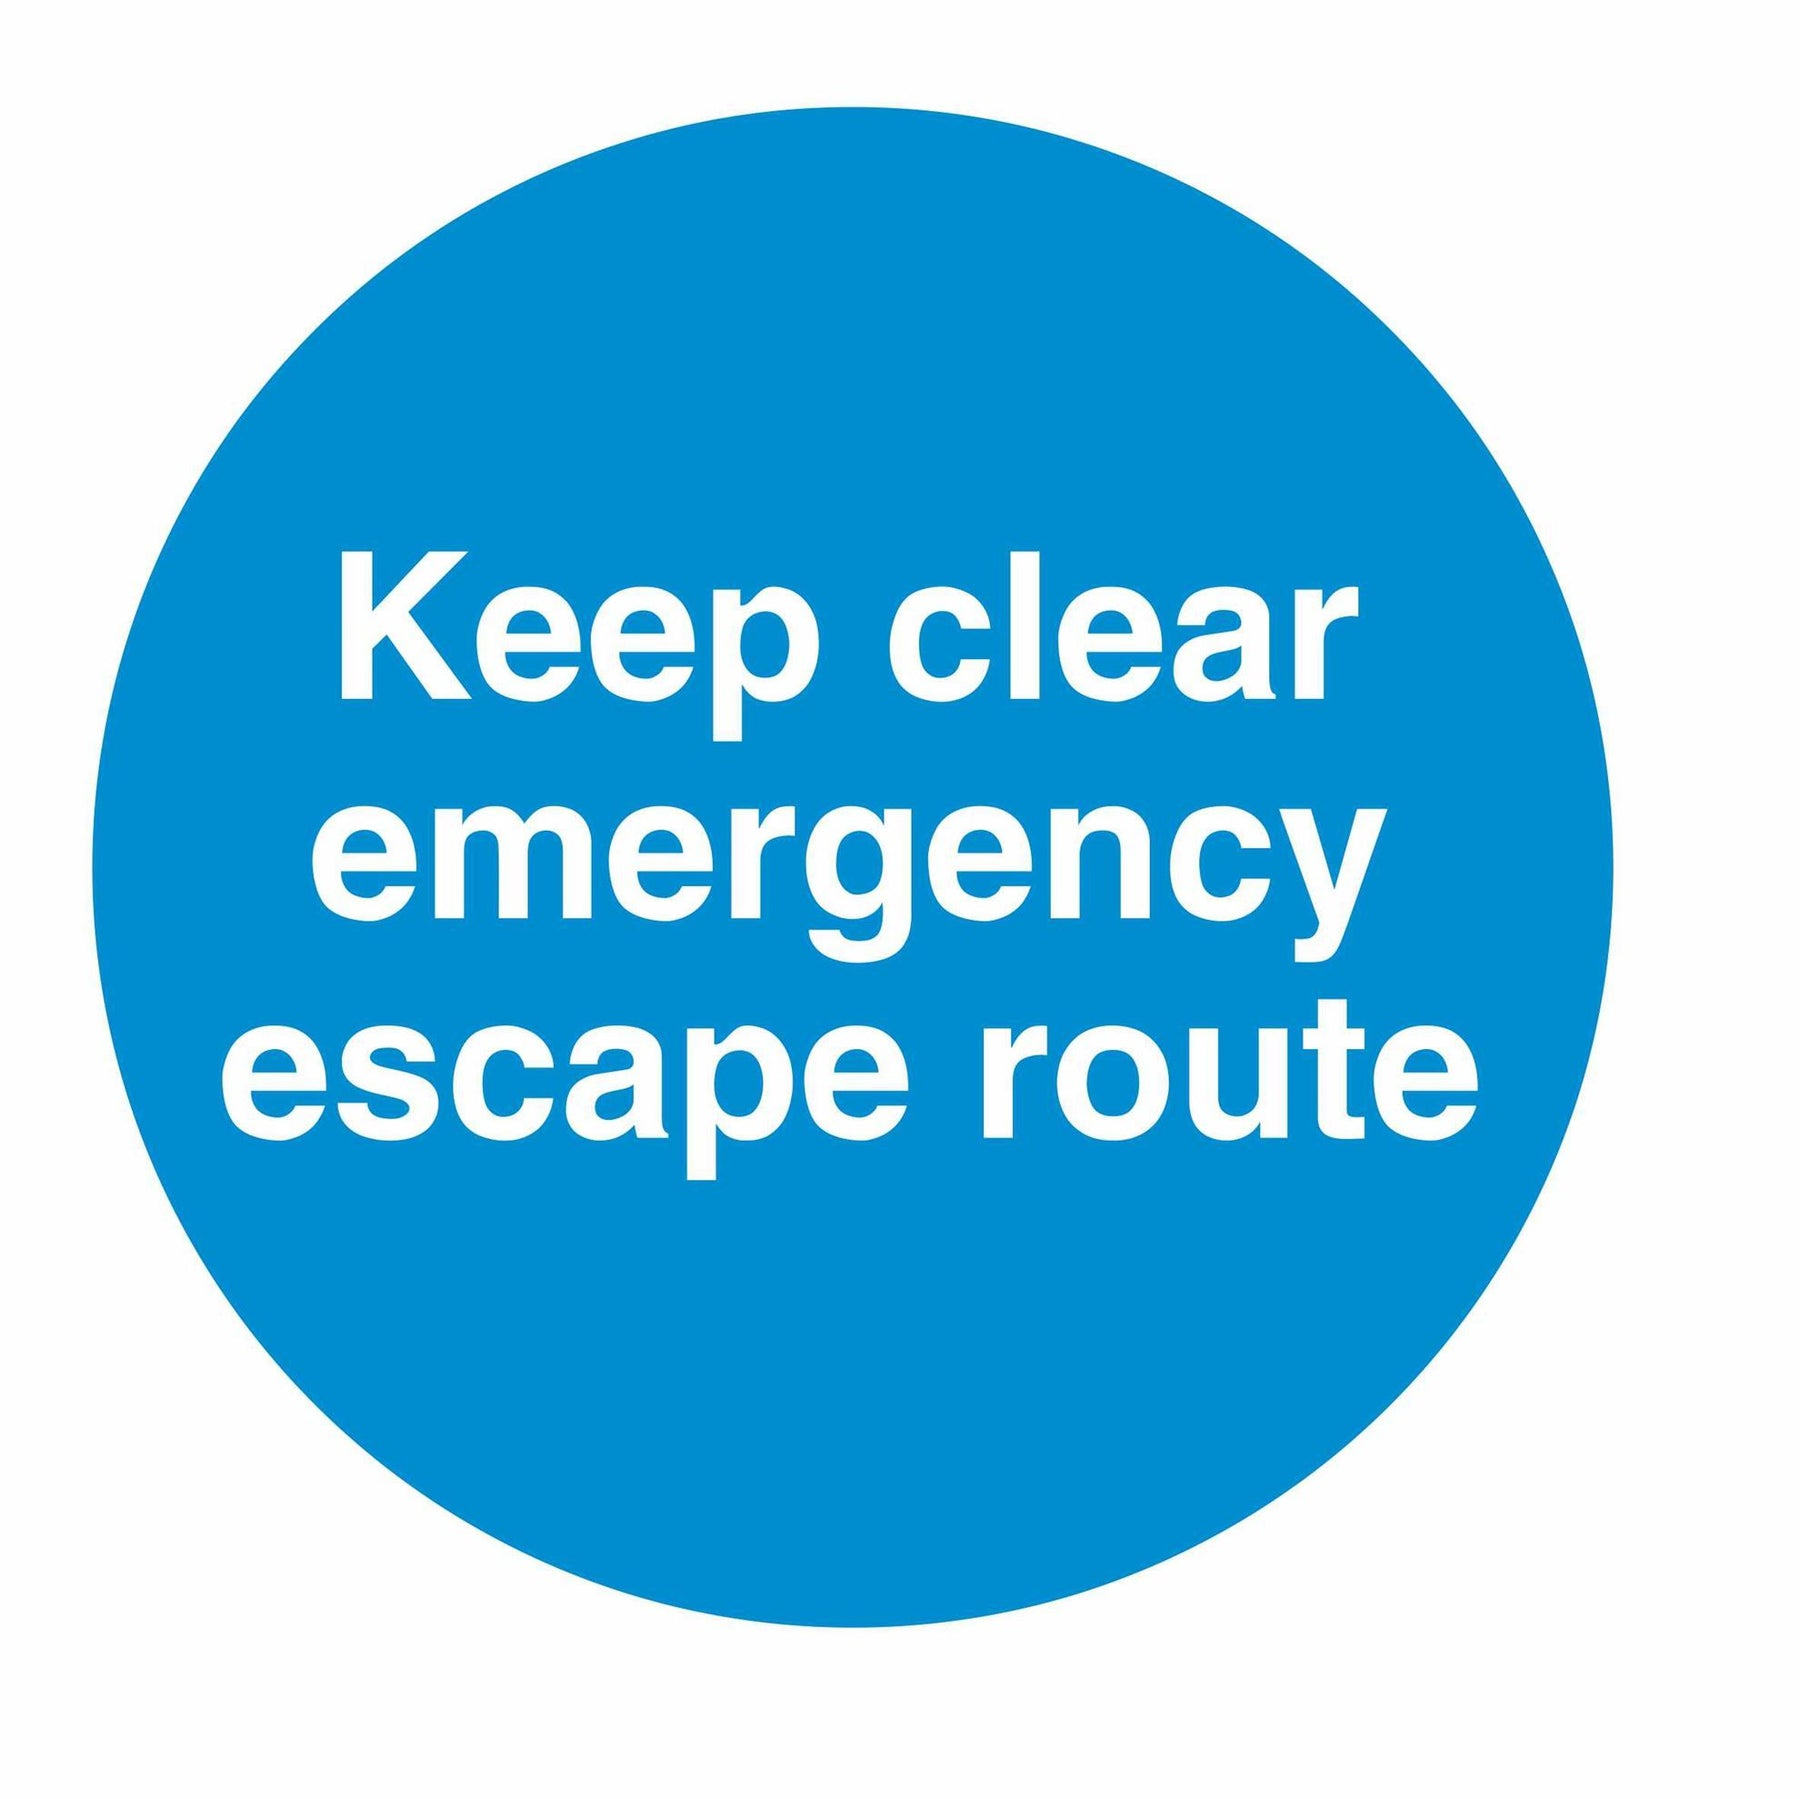 KEEP CLEAR EMERGENCY ESCAPE ROUTE - SELF ADHESIVE STICKER